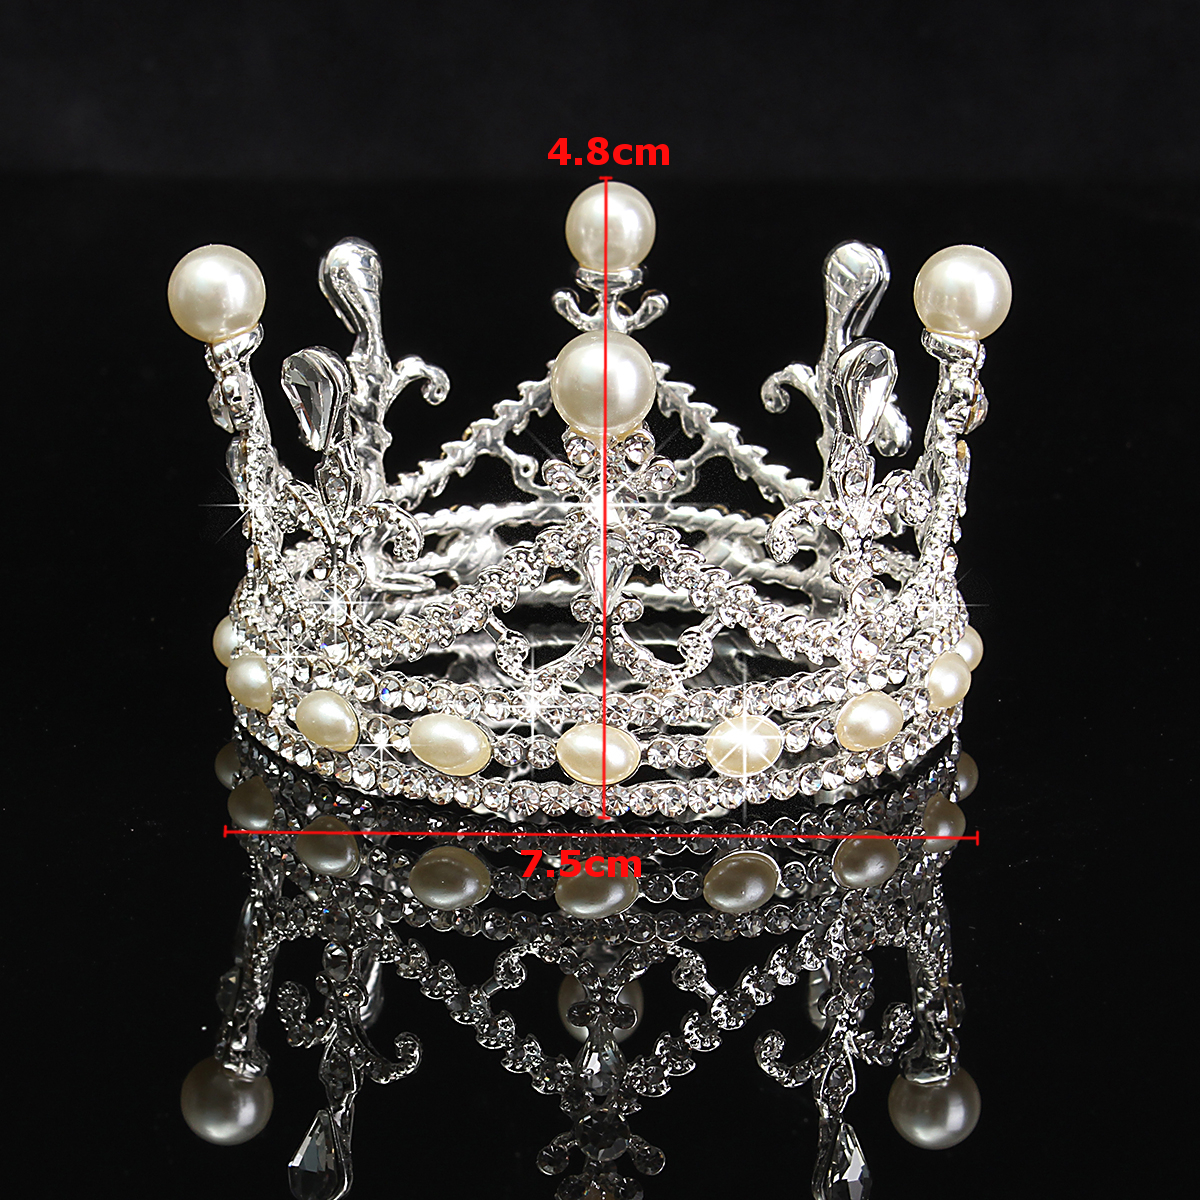 Bride Rhinestone Diamond Pearl Crown Tiara Head Jewelry Princess Queen Headpiece Wedding Accessories